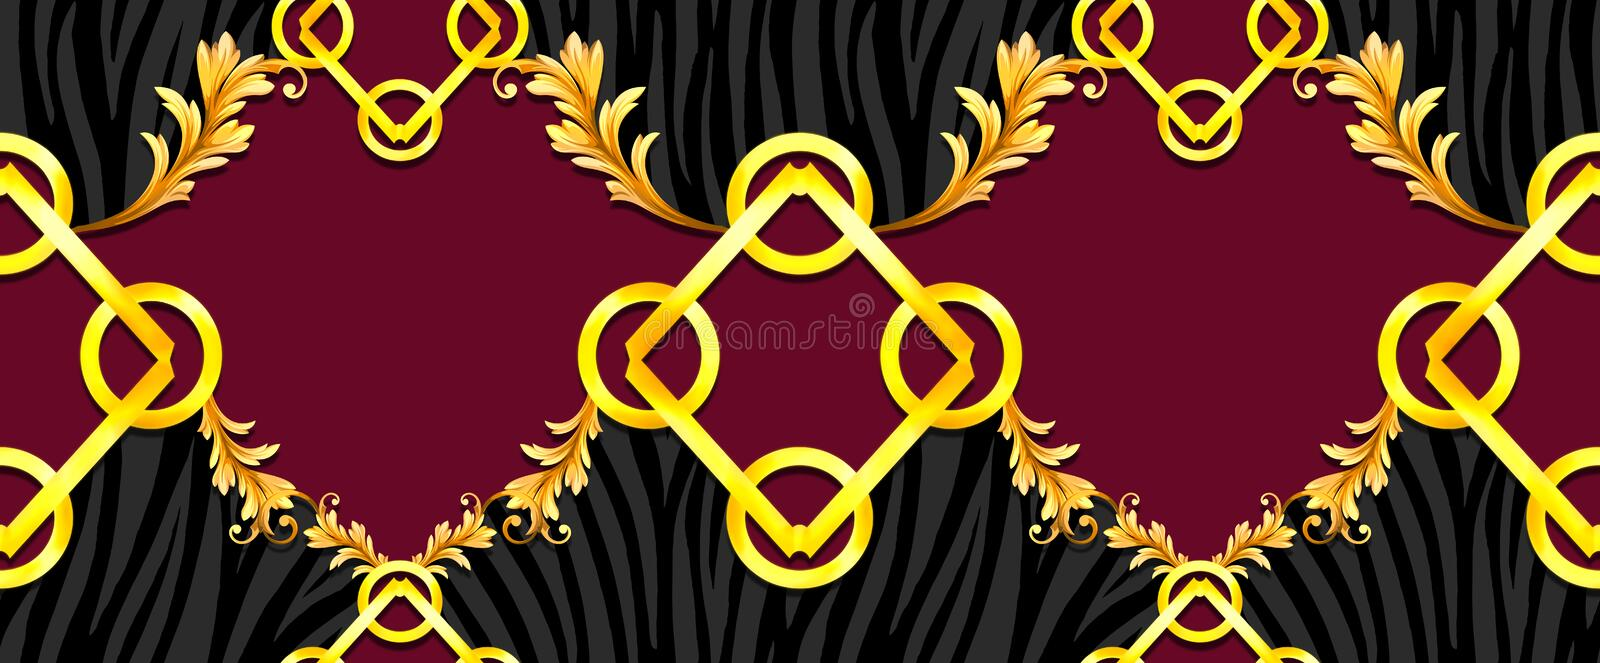 Seamless Golden Baroque with Zebra Pattern on Dark Red Background. Ready for Textile Prints. Silk Scarf Pattern.  royalty free illustration